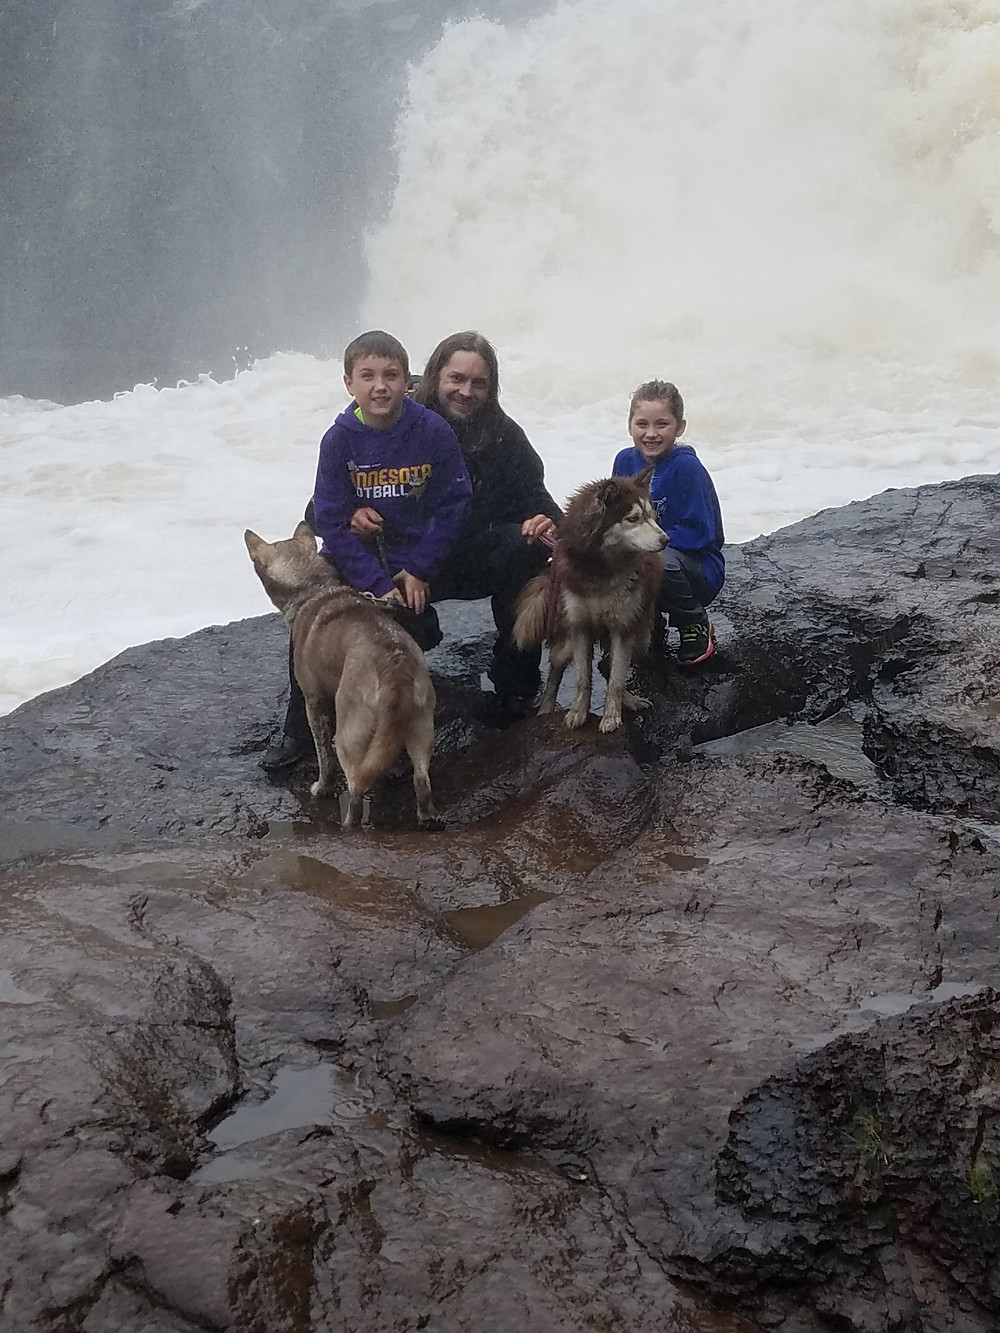 Devil's Kettle-Cold and wet from the rain only to stand under the falls